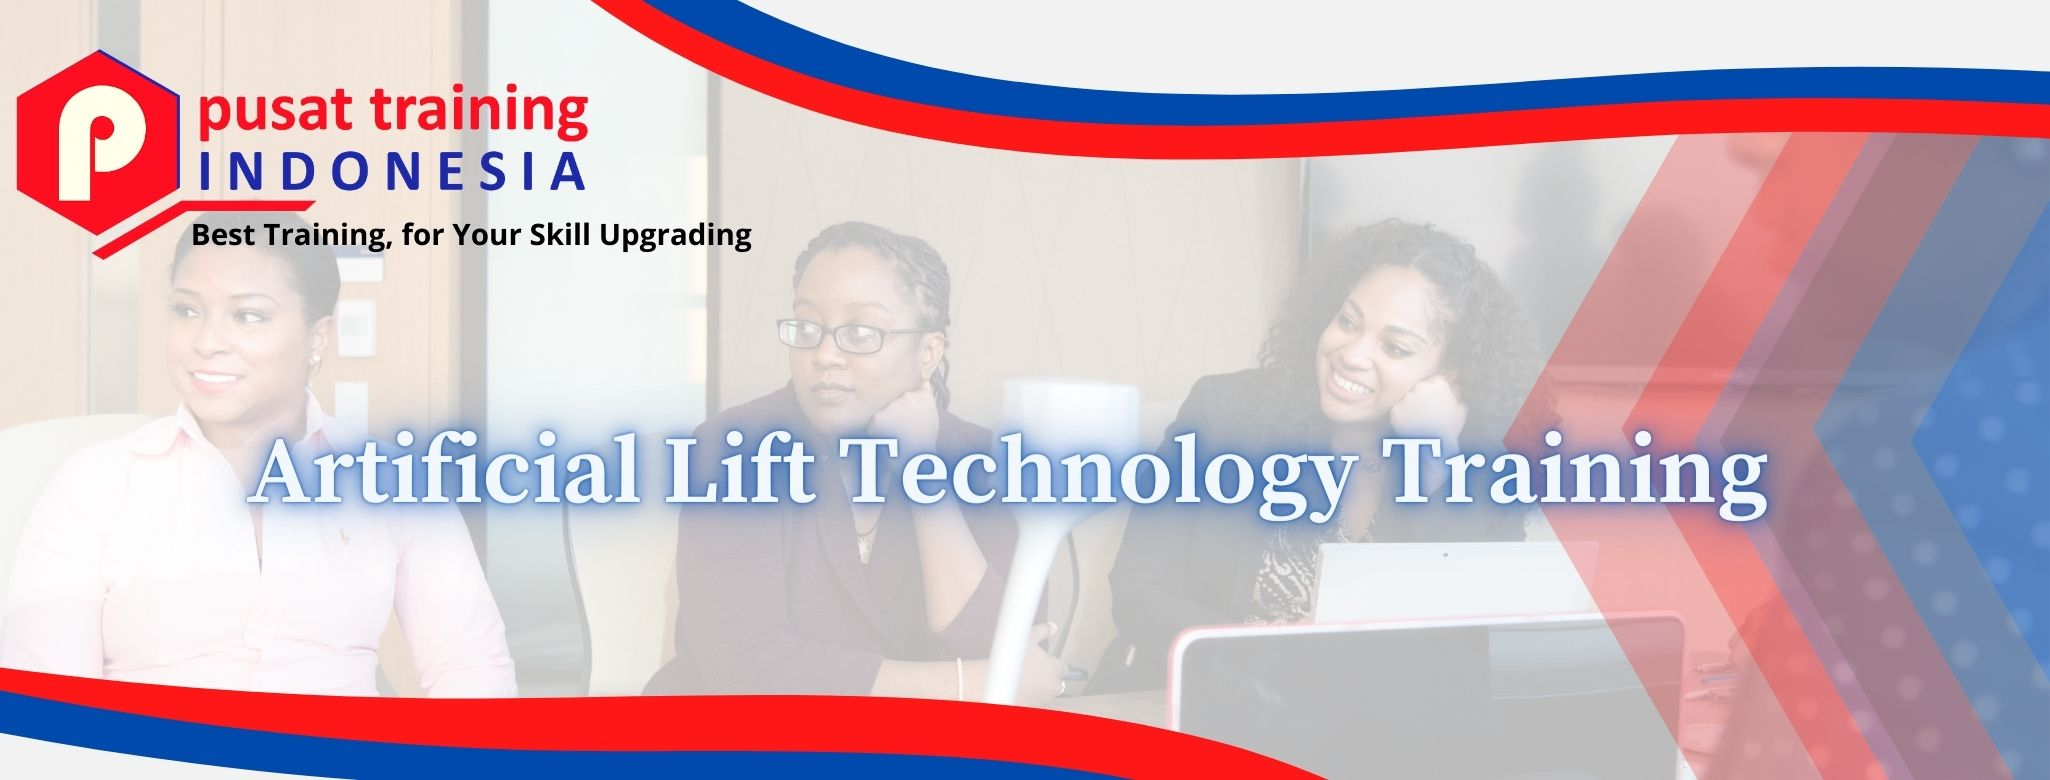 Artificial-Lift-Technology-Training